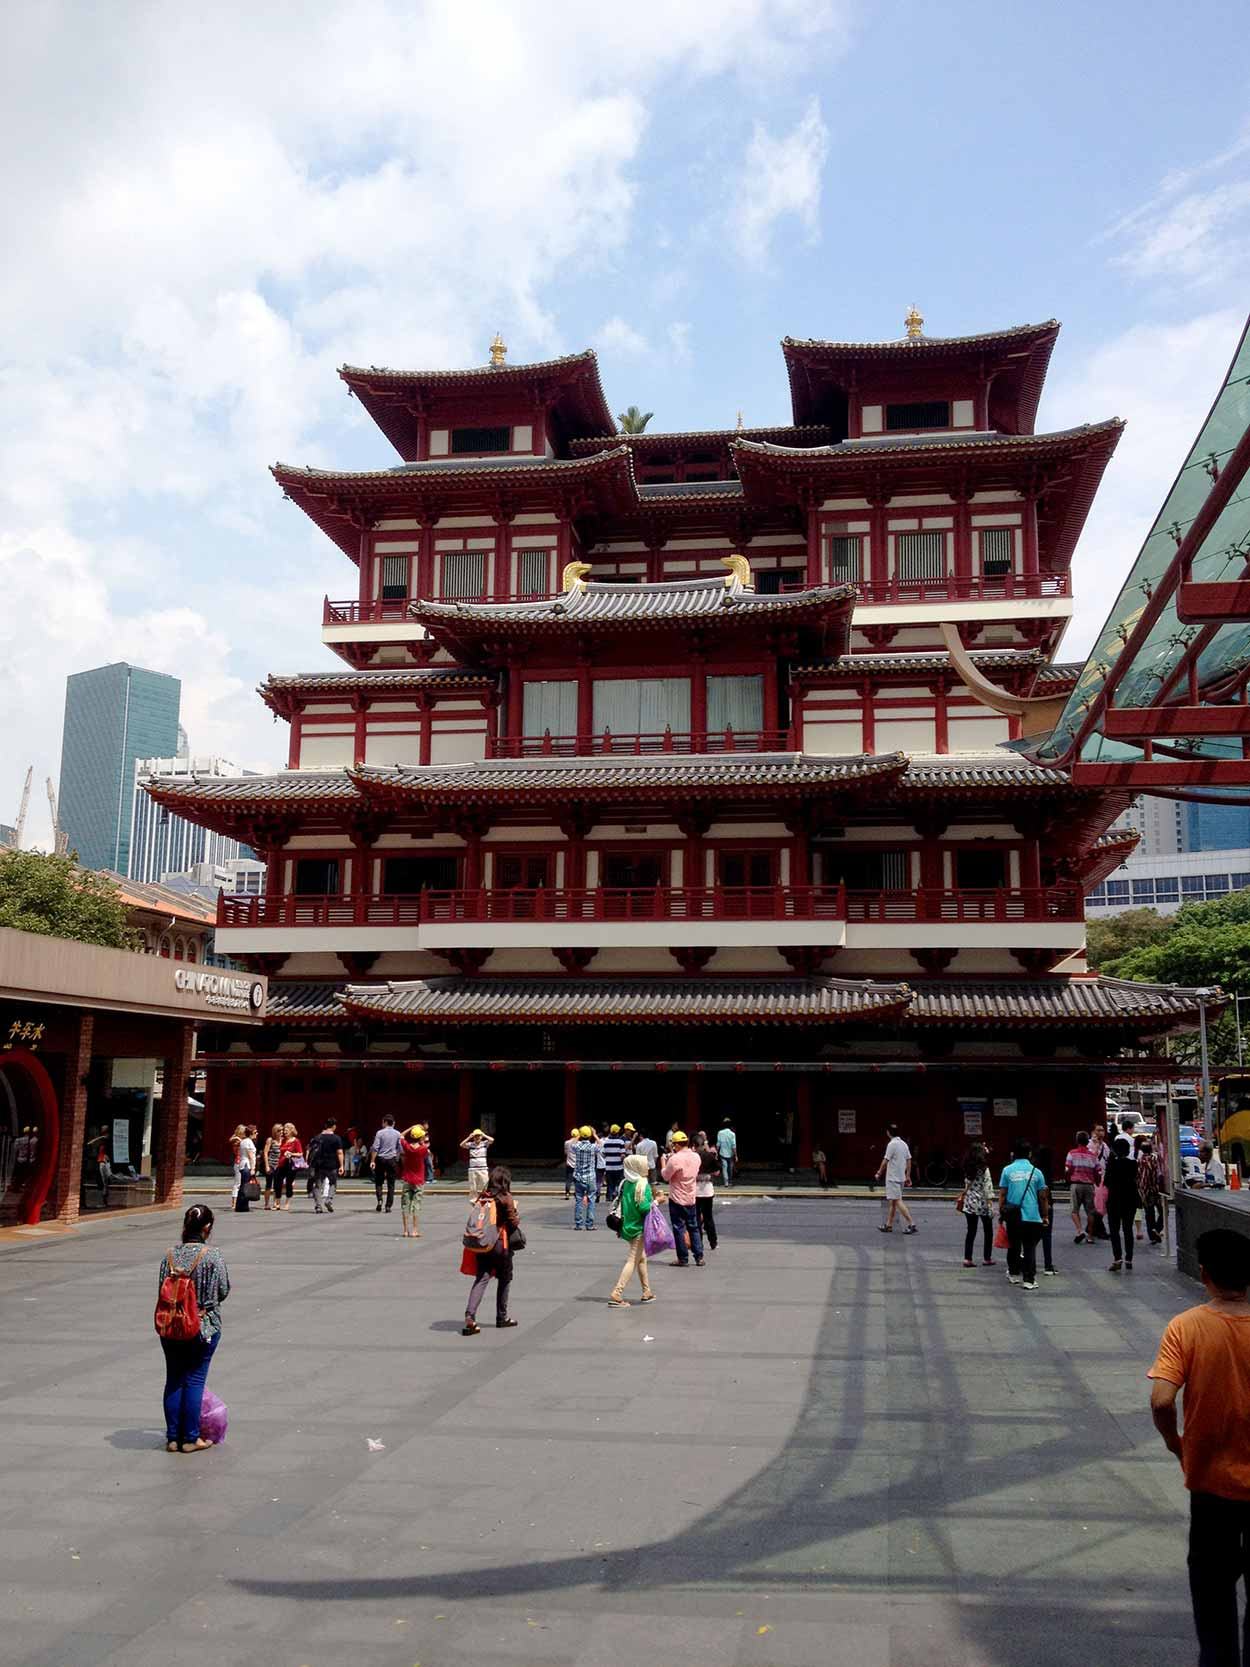 Buddha Tooth Relic Temple and Museum on South Bridge Road, Chinatown, Singapore